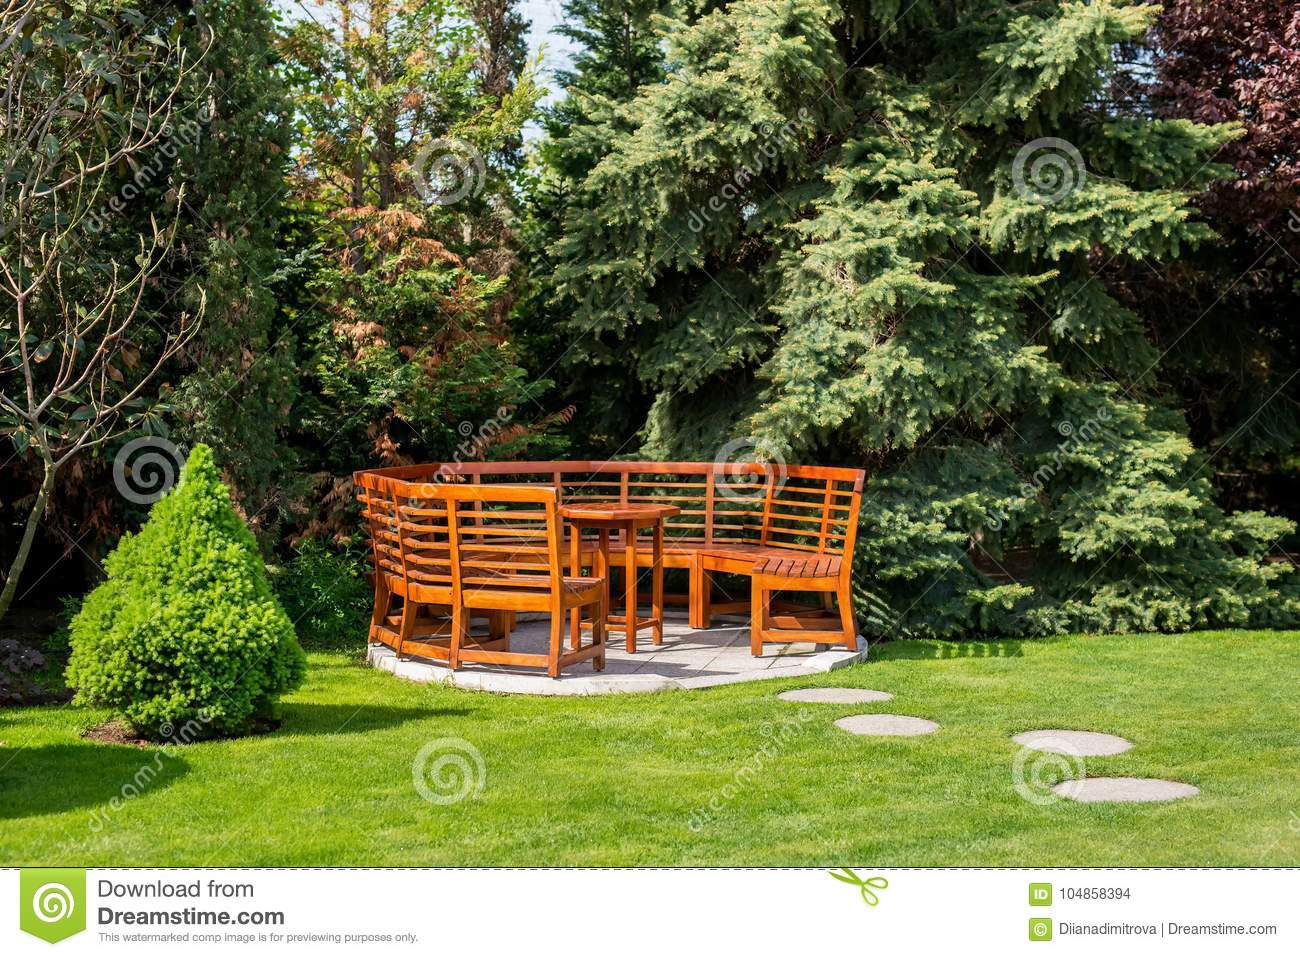 Sensational Sunny Day In A Spring Garden With Wooden Table And Benches Ibusinesslaw Wood Chair Design Ideas Ibusinesslaworg